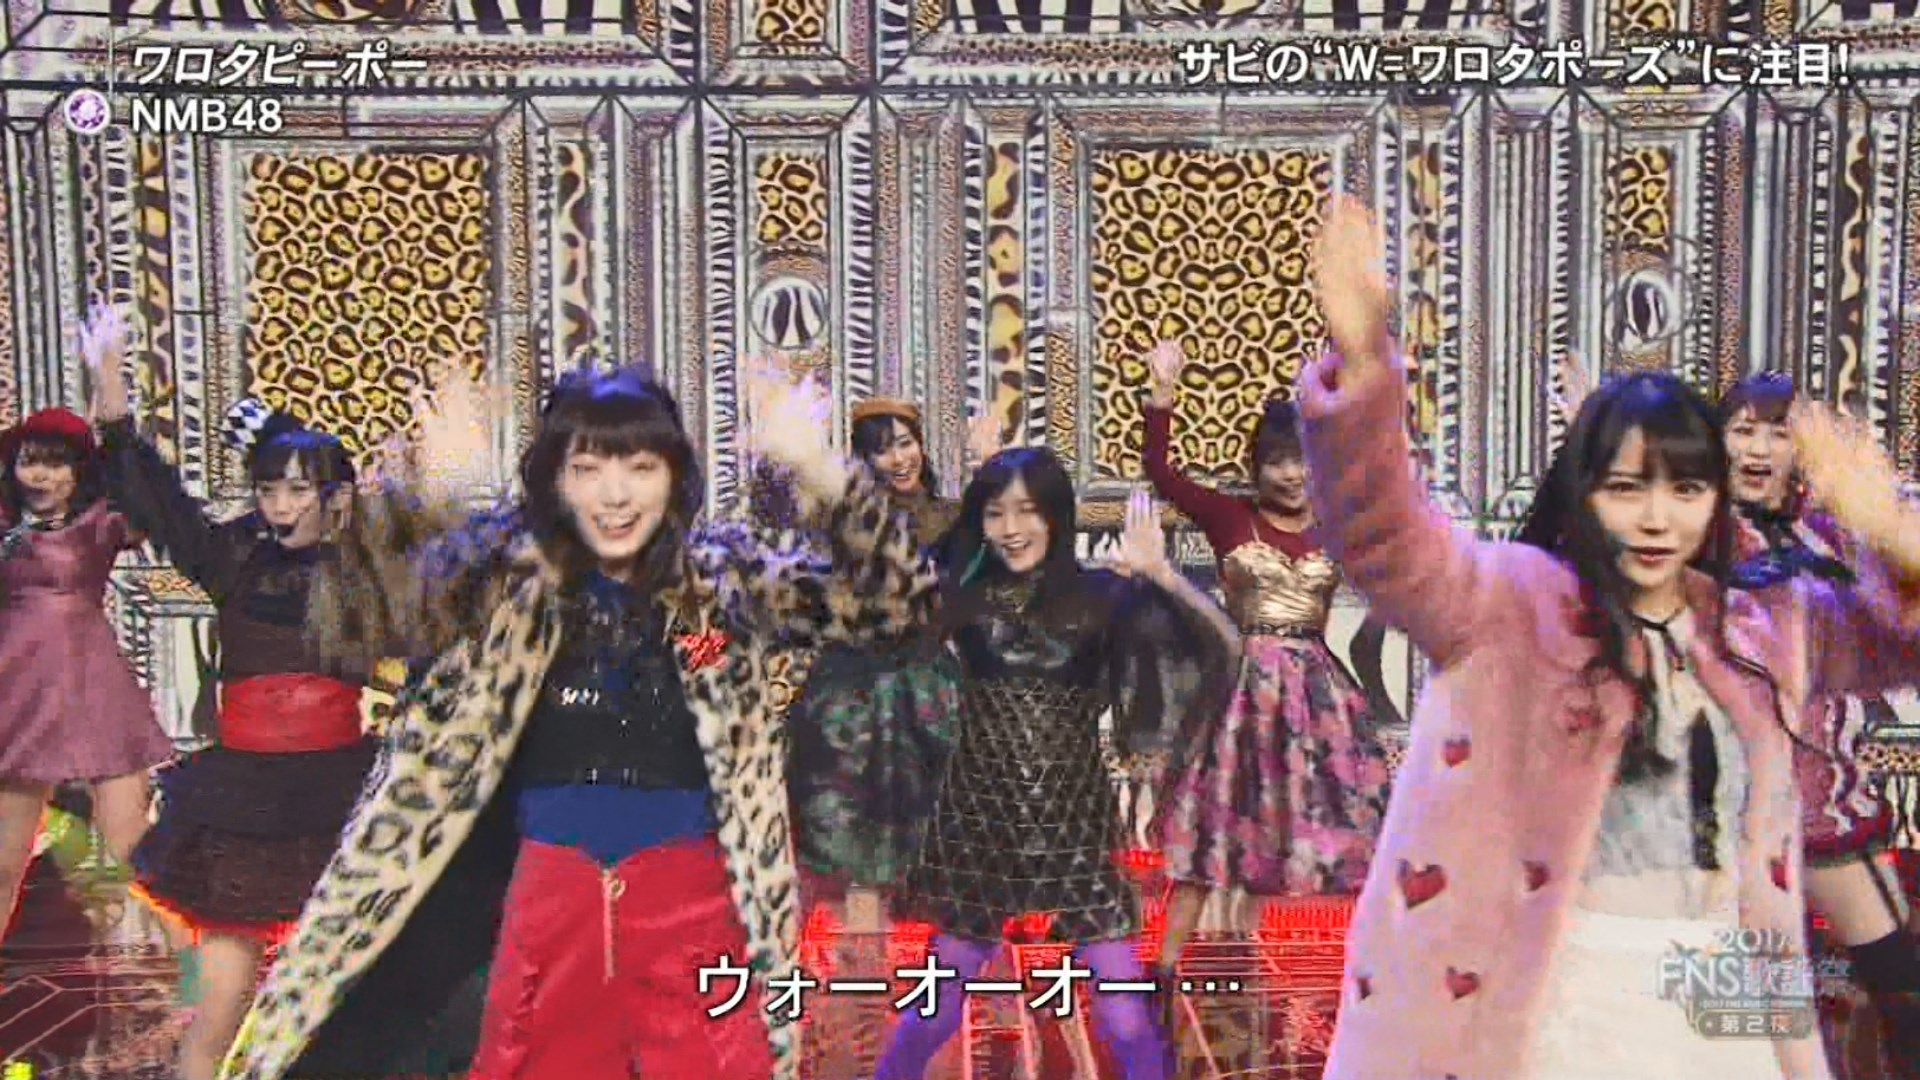 2017FNS歌謡祭第2夜・NMB48ワロタピーポーキャプ-090